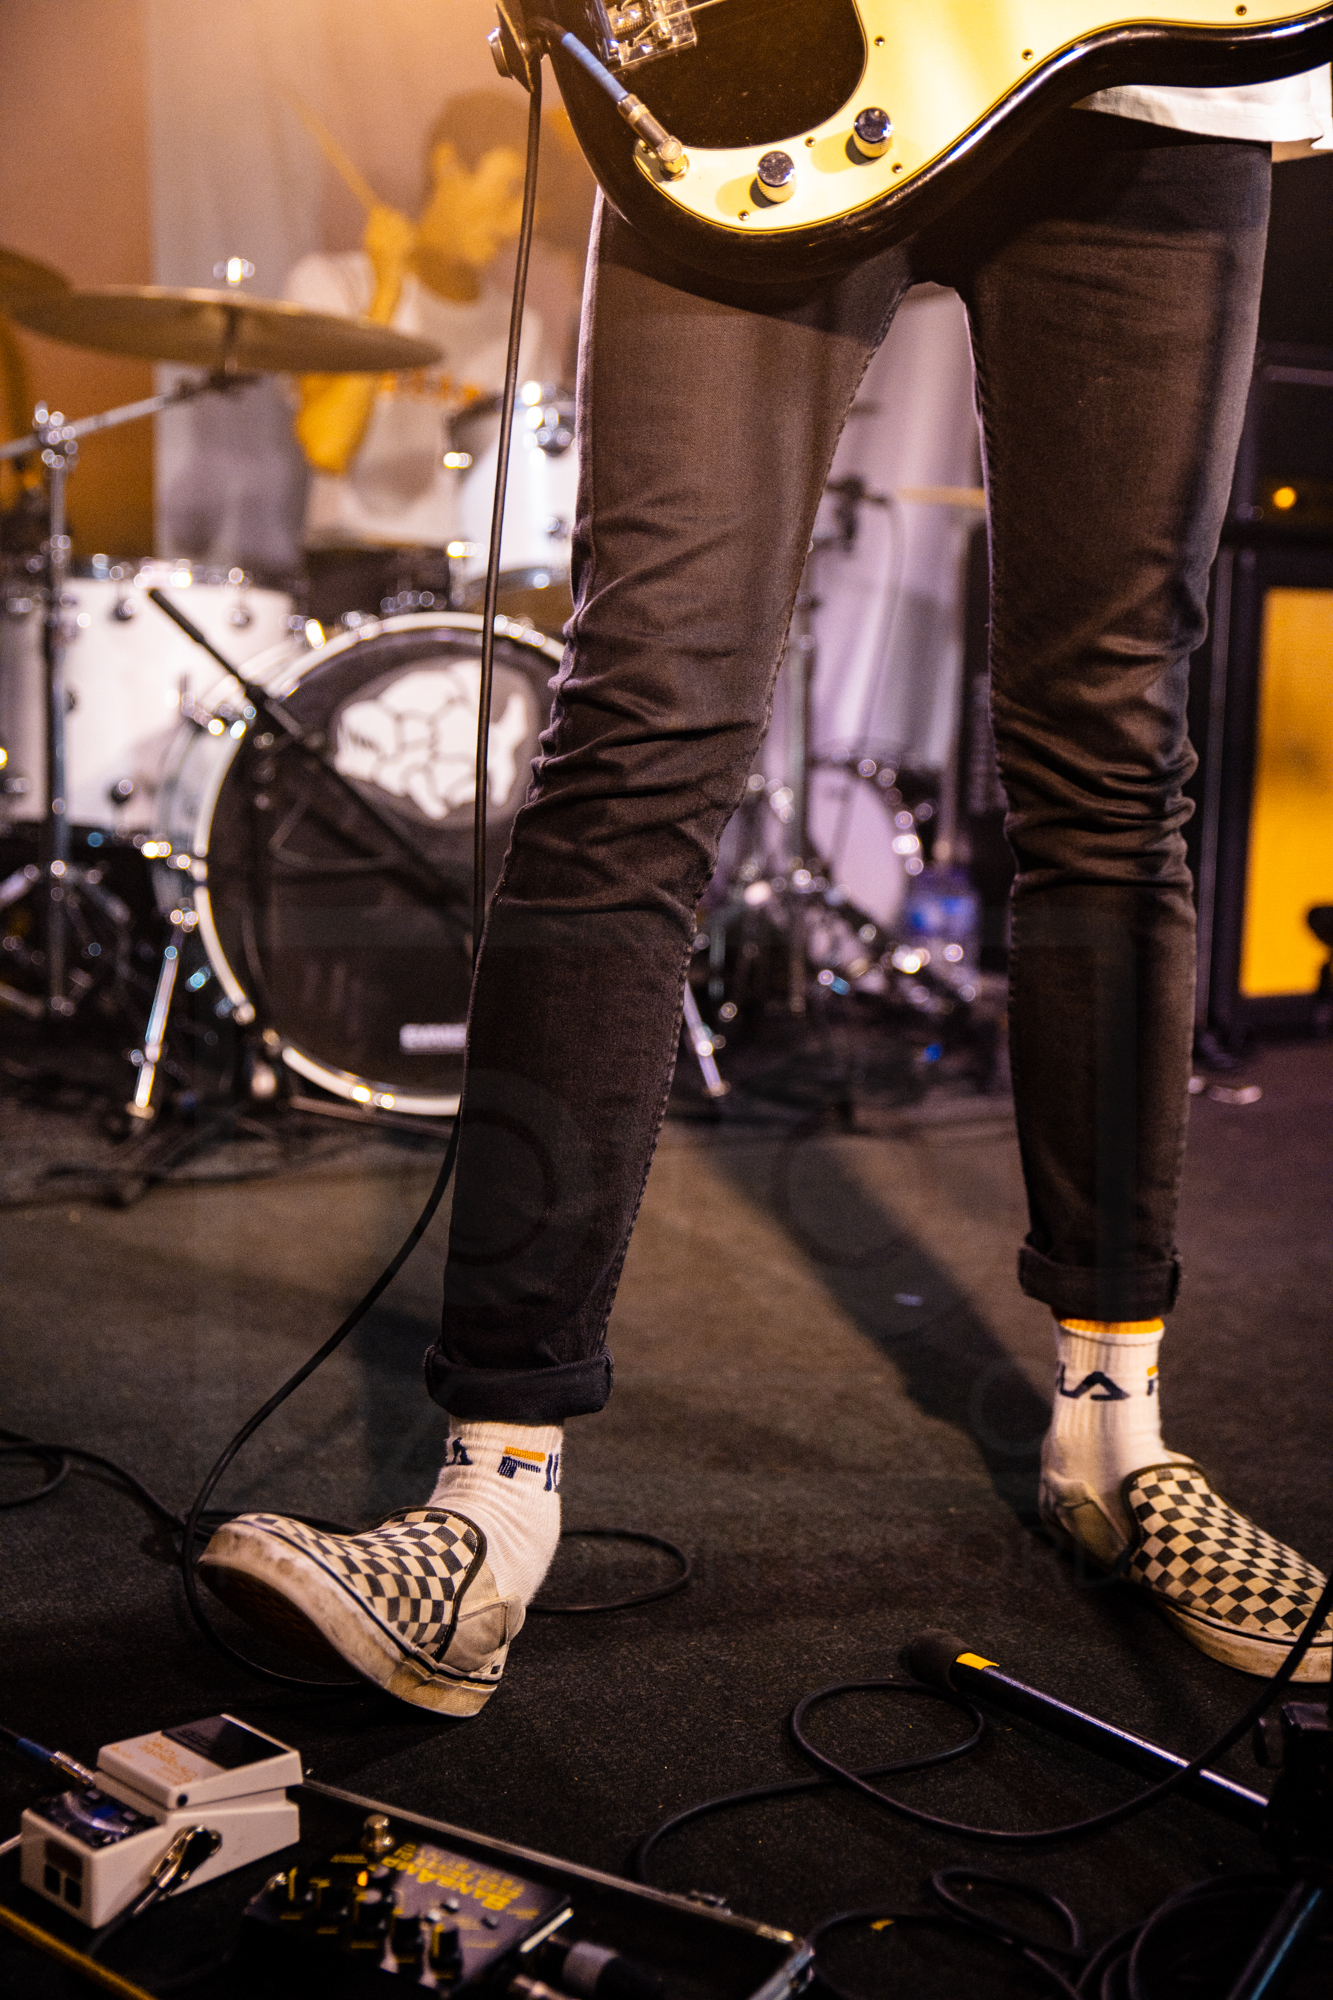 6-WithConfidence-ManchesterAcademy3-26-9-19.jpg